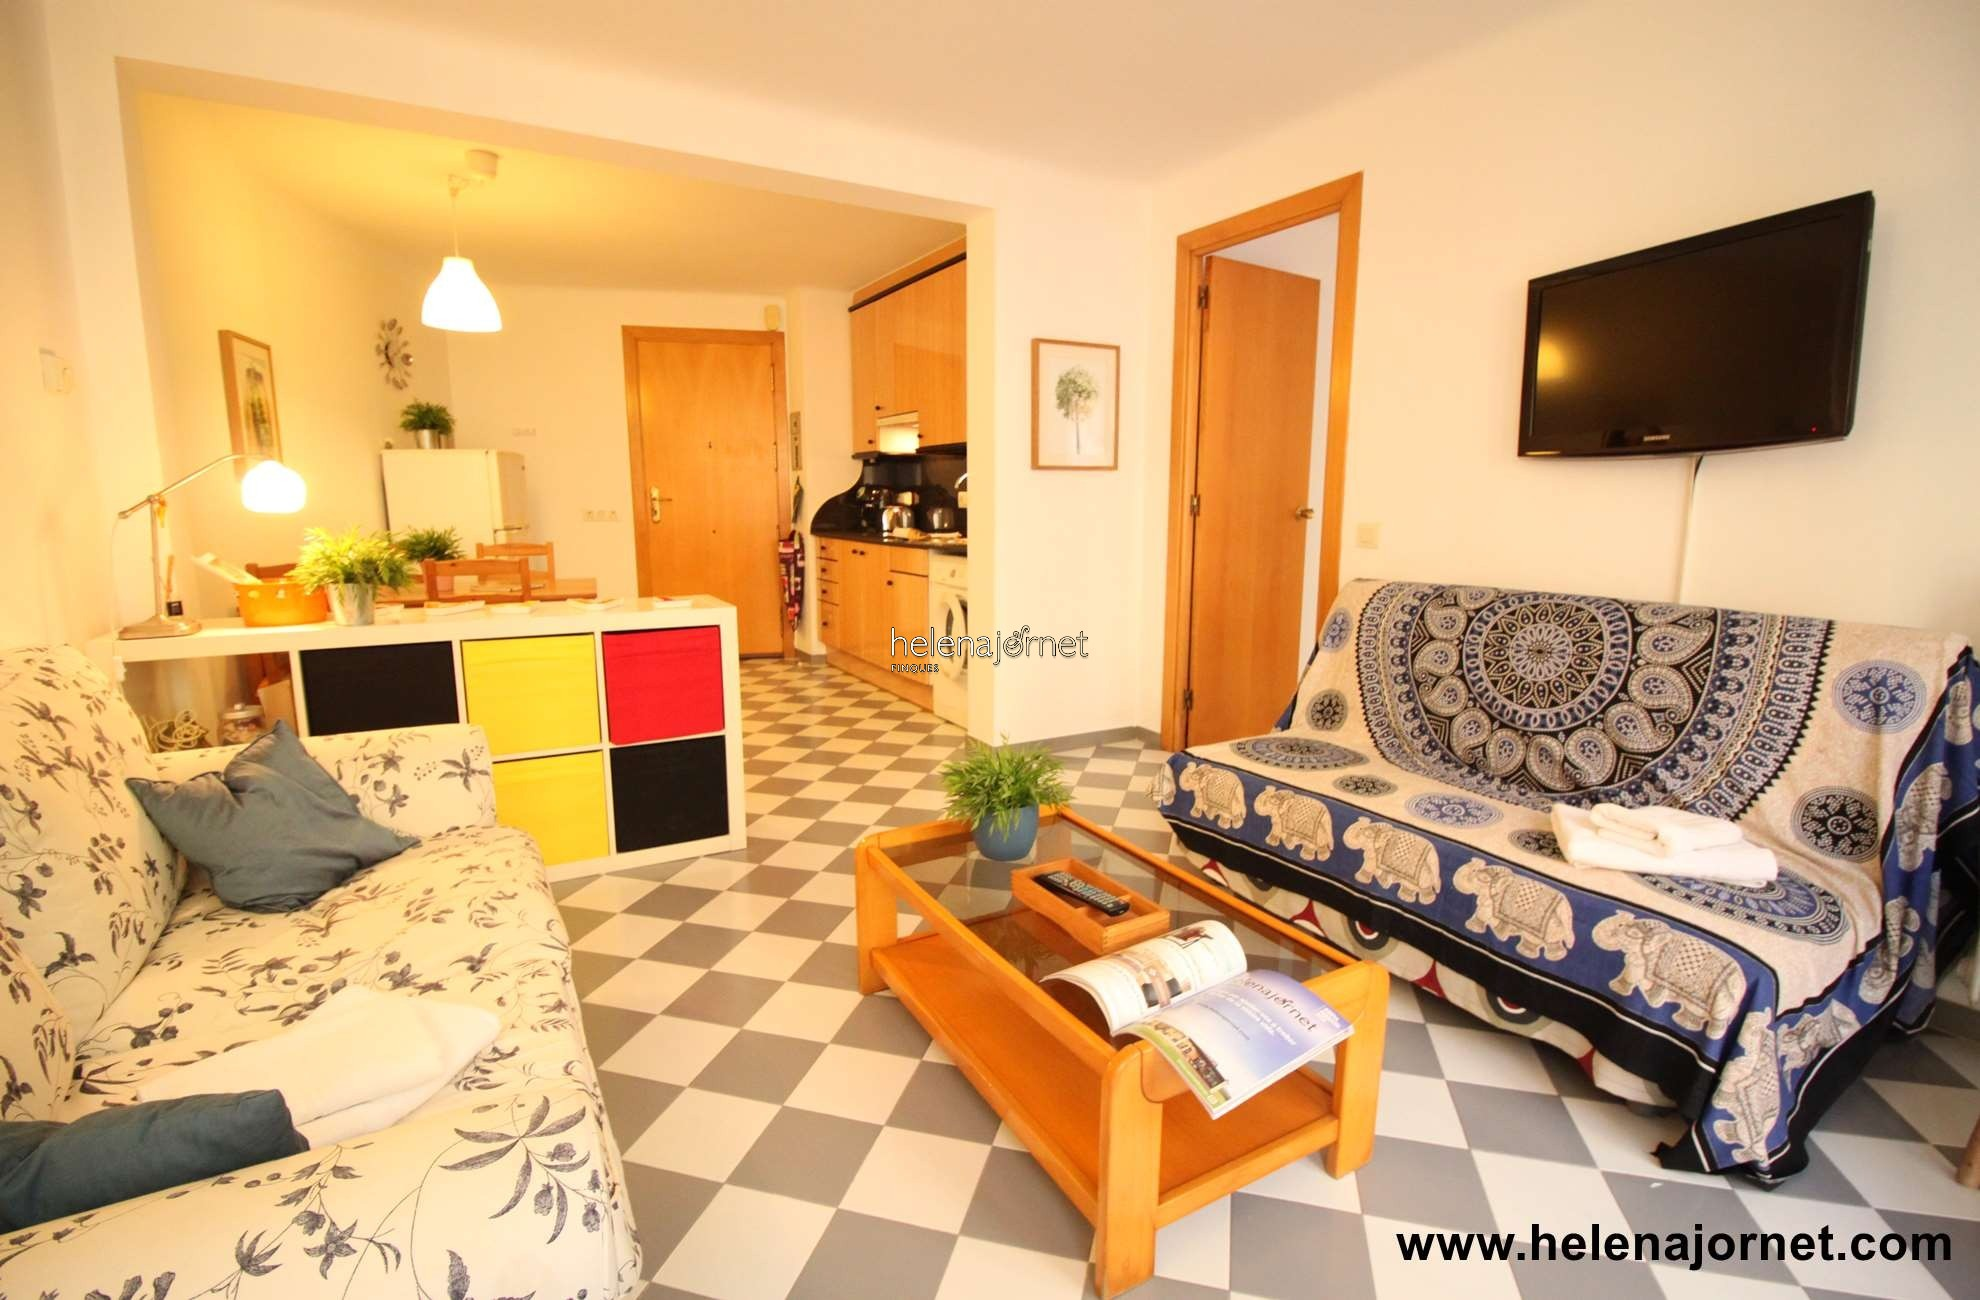 Apartment located just a few meters away from the beach - 21